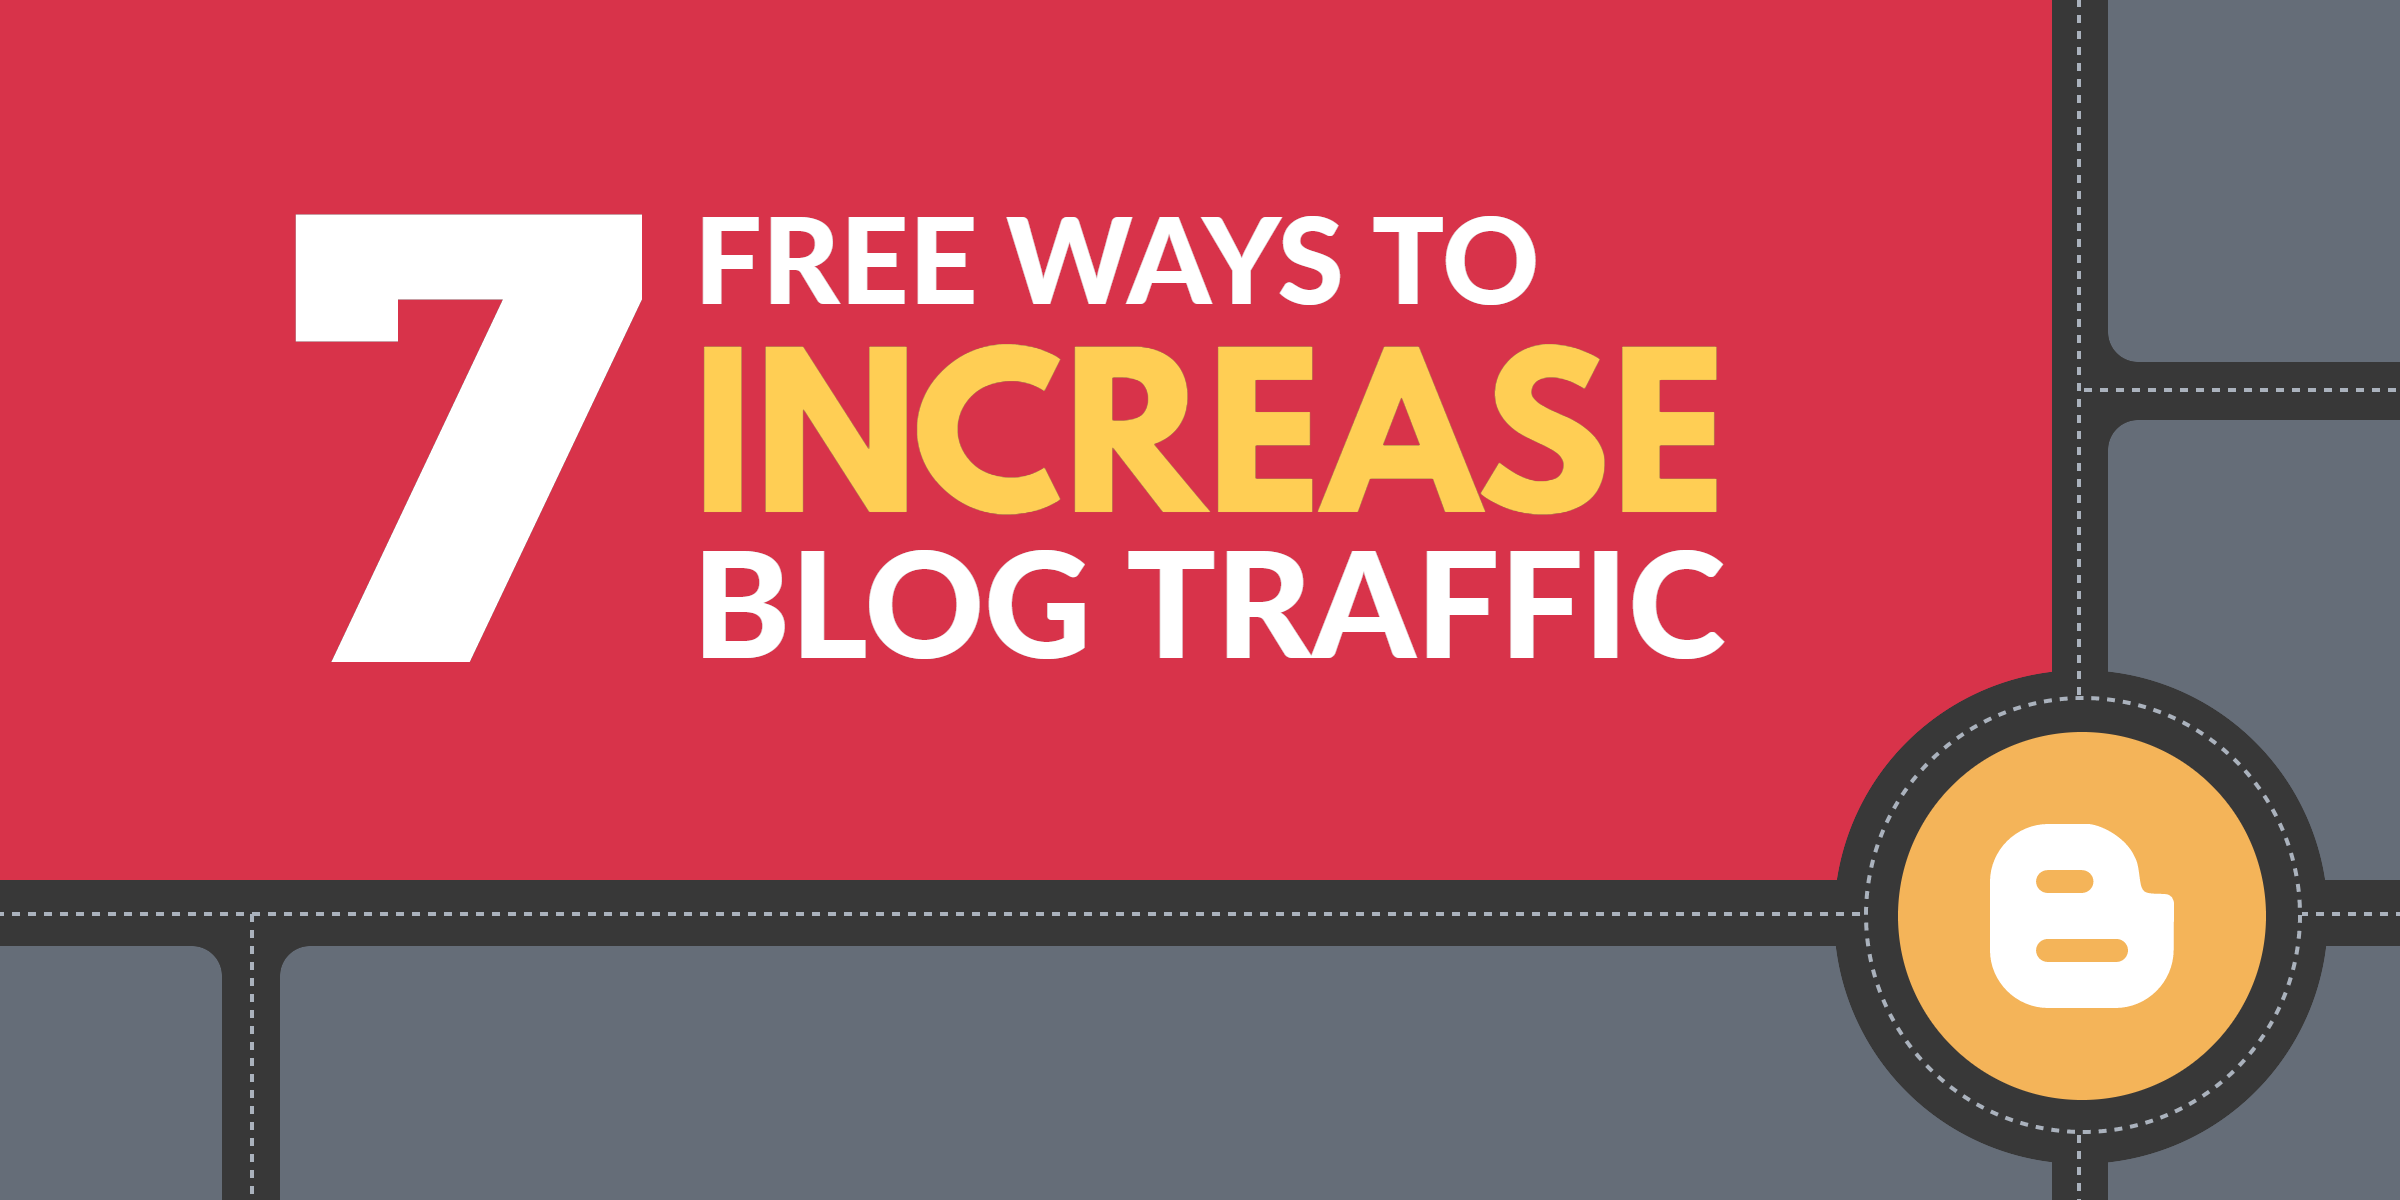 7 free ways to increase blog traffic